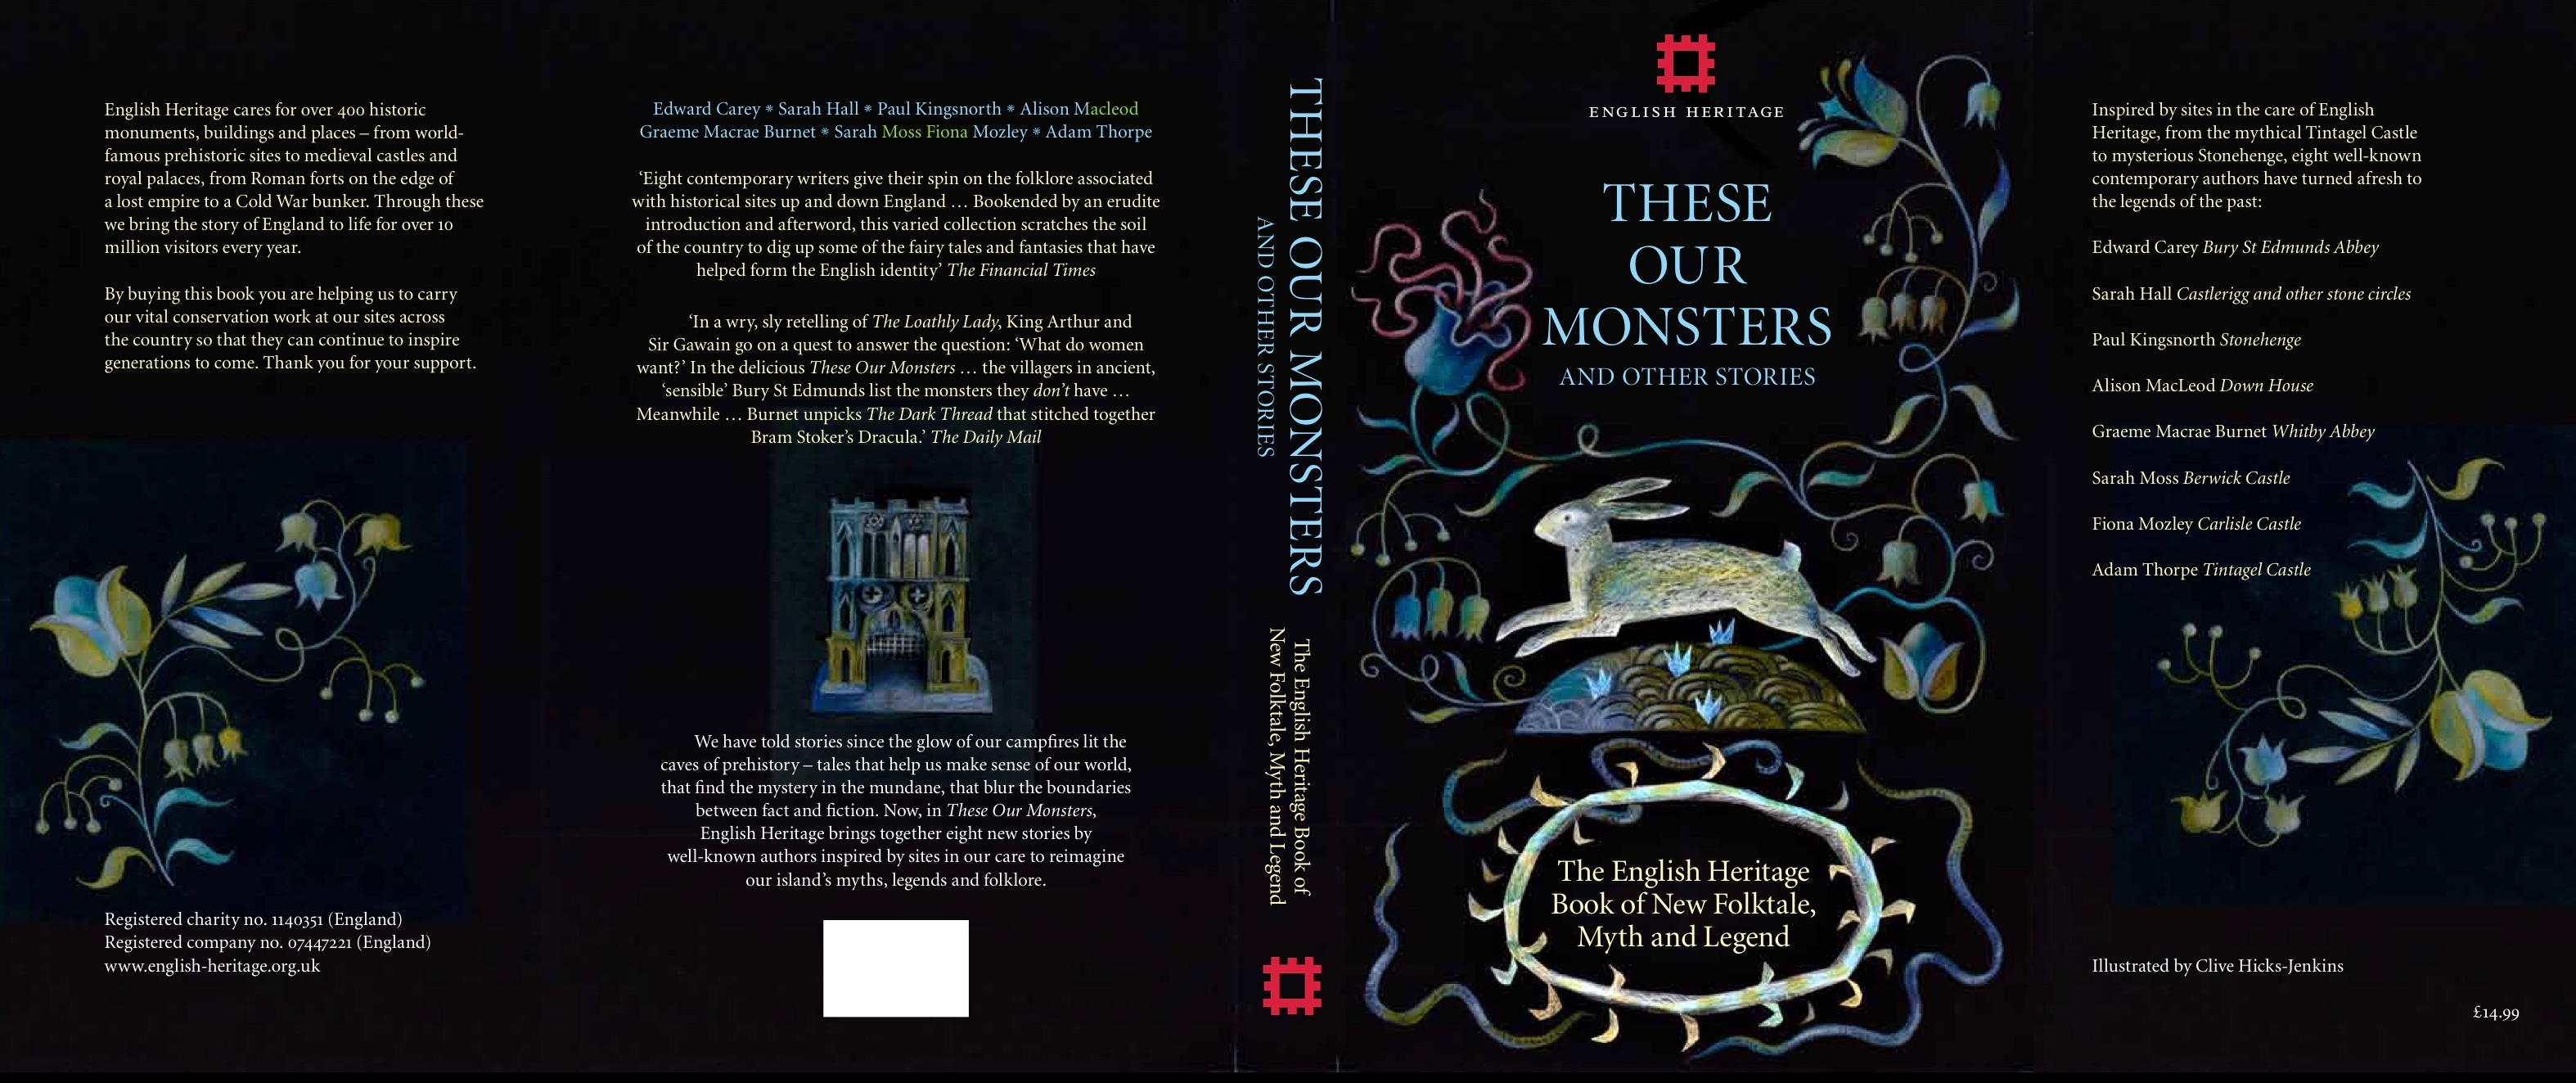 EH_These Are Monsters_Dust cover_NEW_F cf E